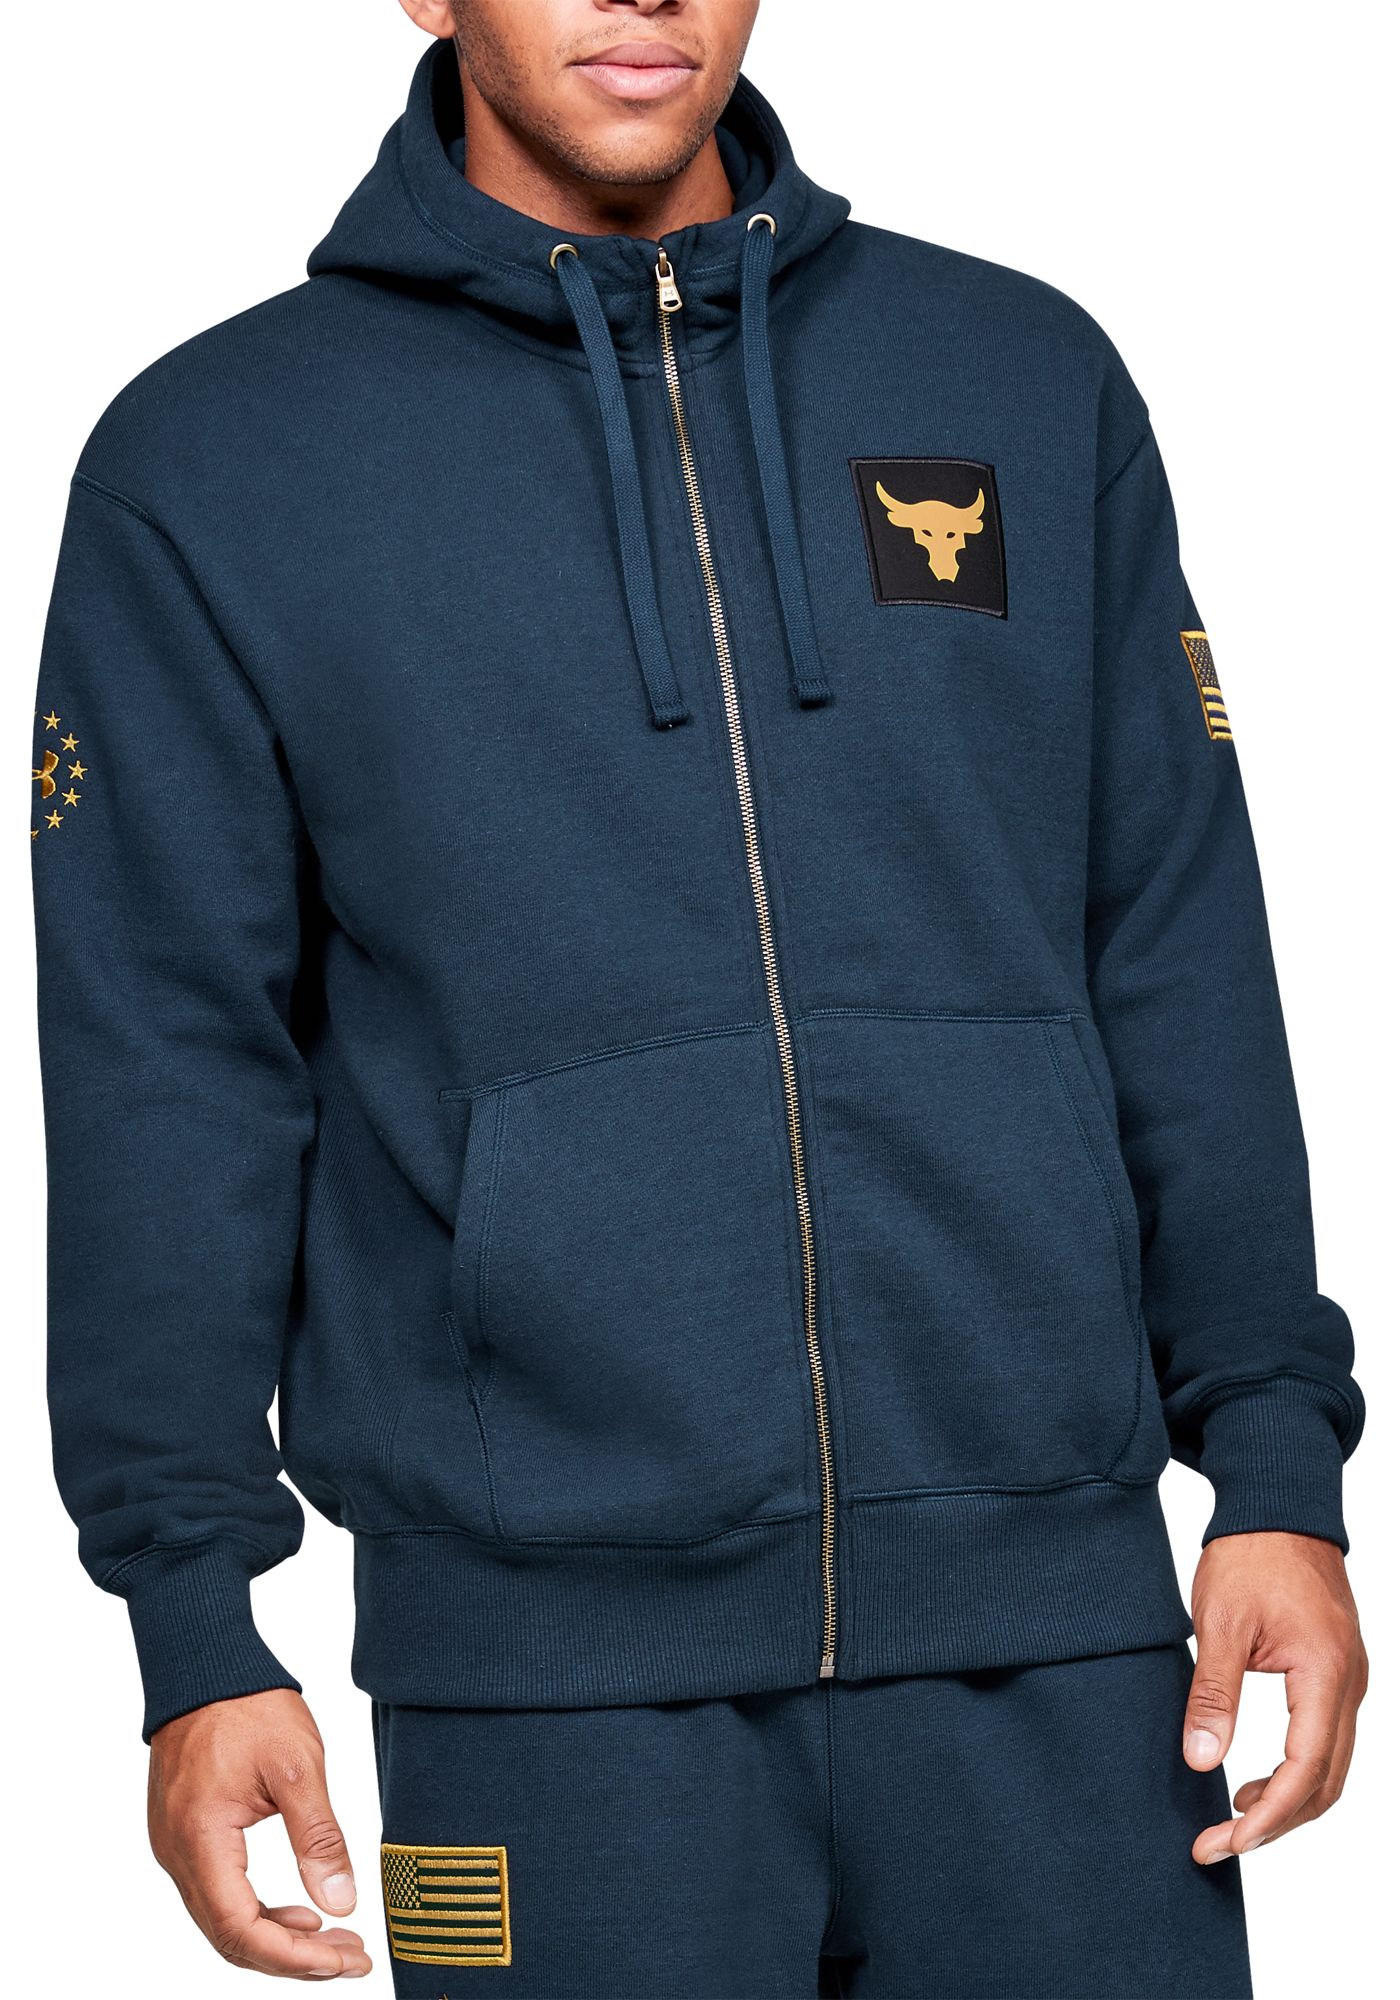 Under Armour Men's Project Rock Veteran's Day Full-Zip Hoodie